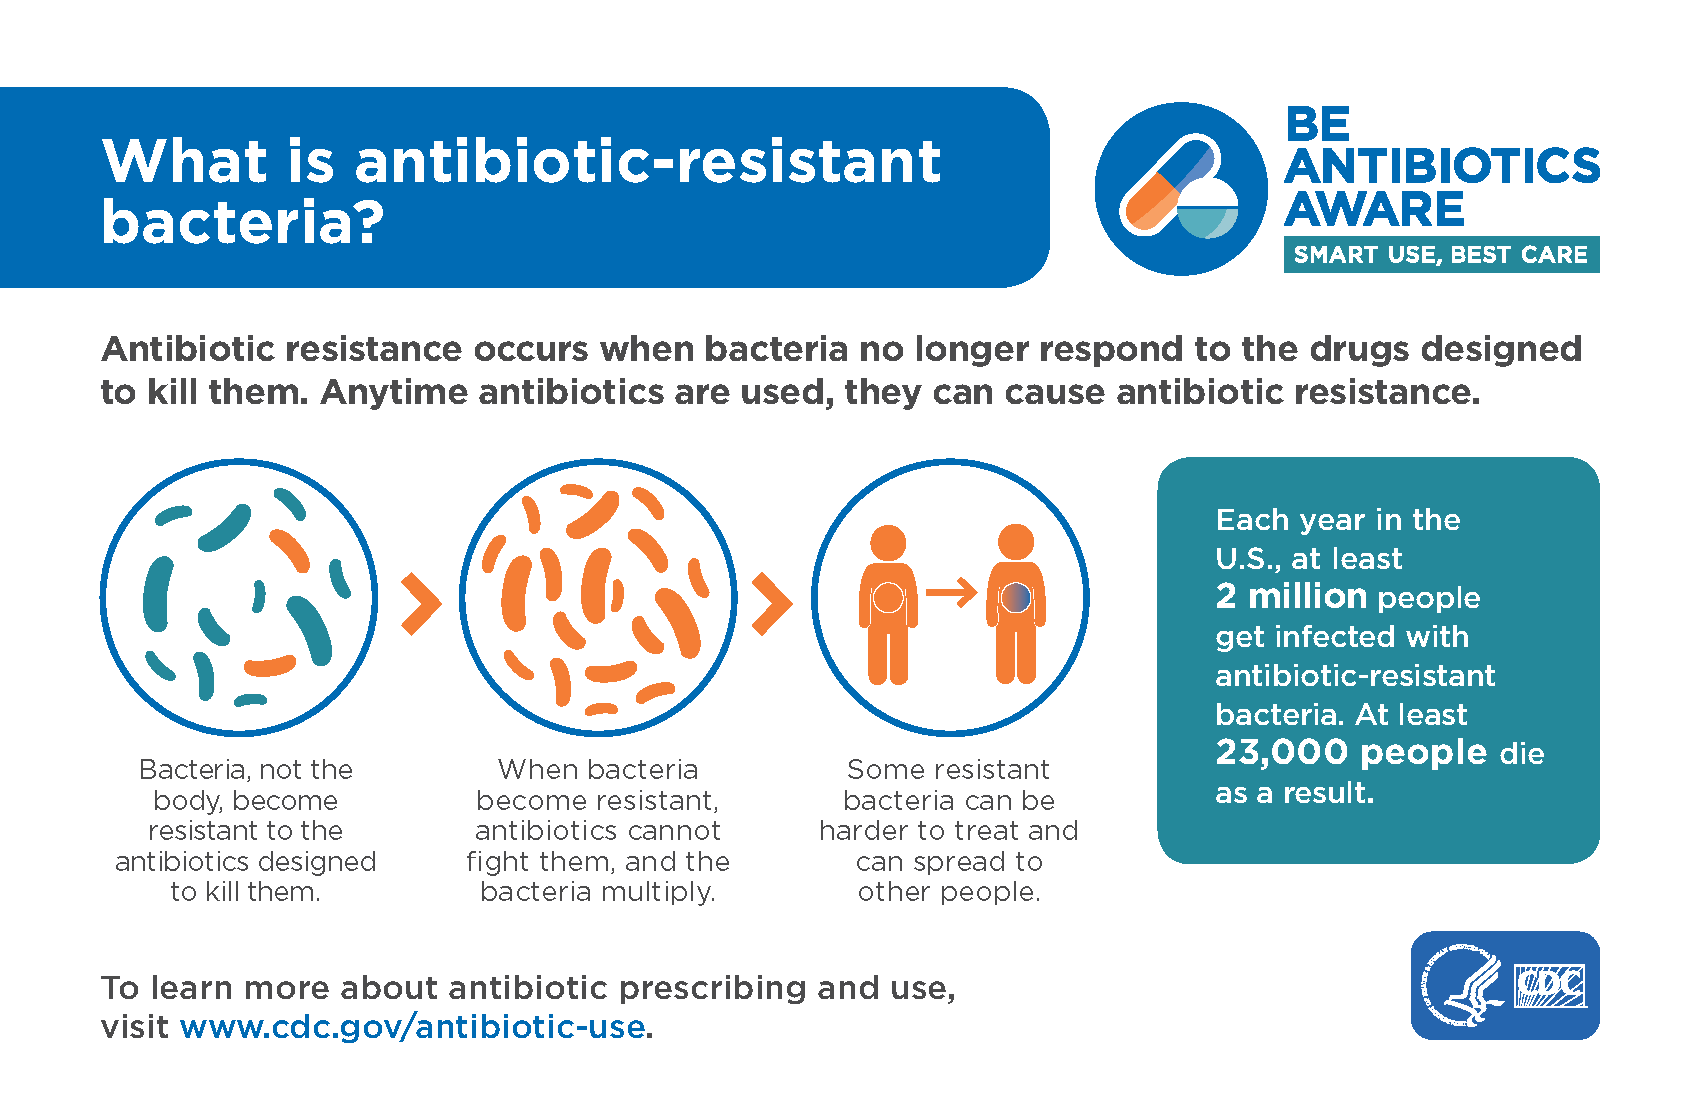 WHAT IS ANTIBIOTIC RESISTANCE